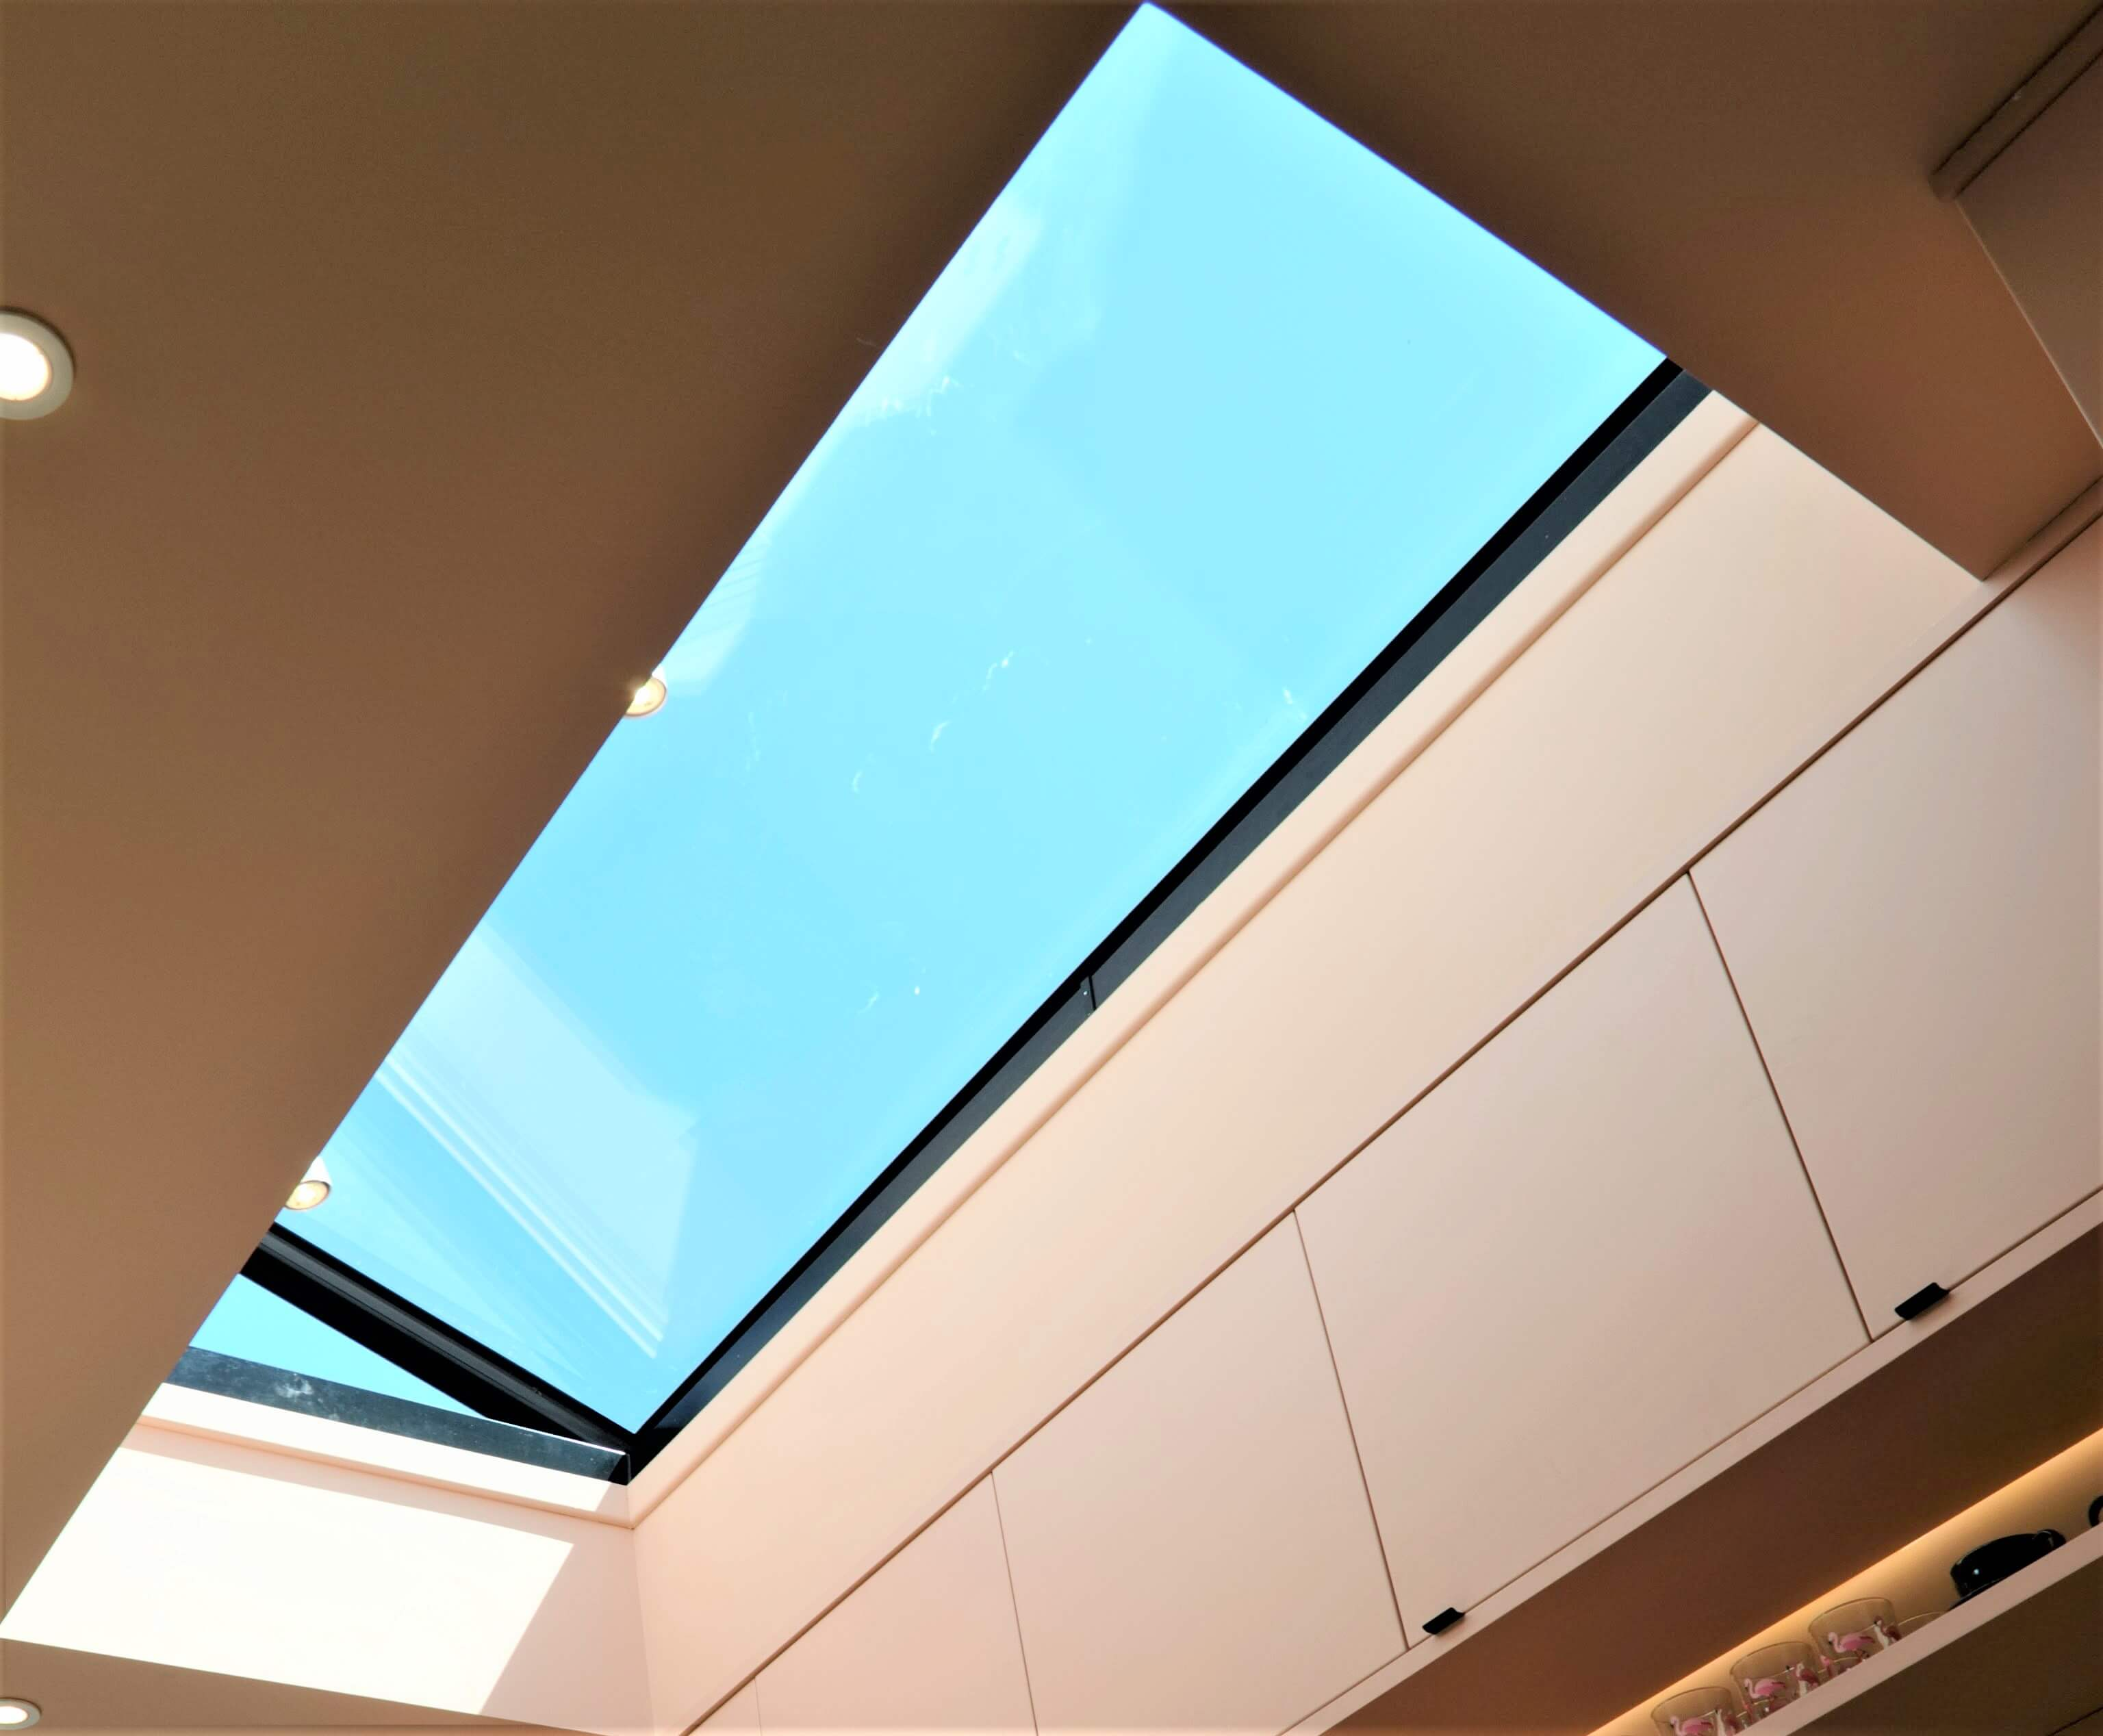 Hinged rooflight